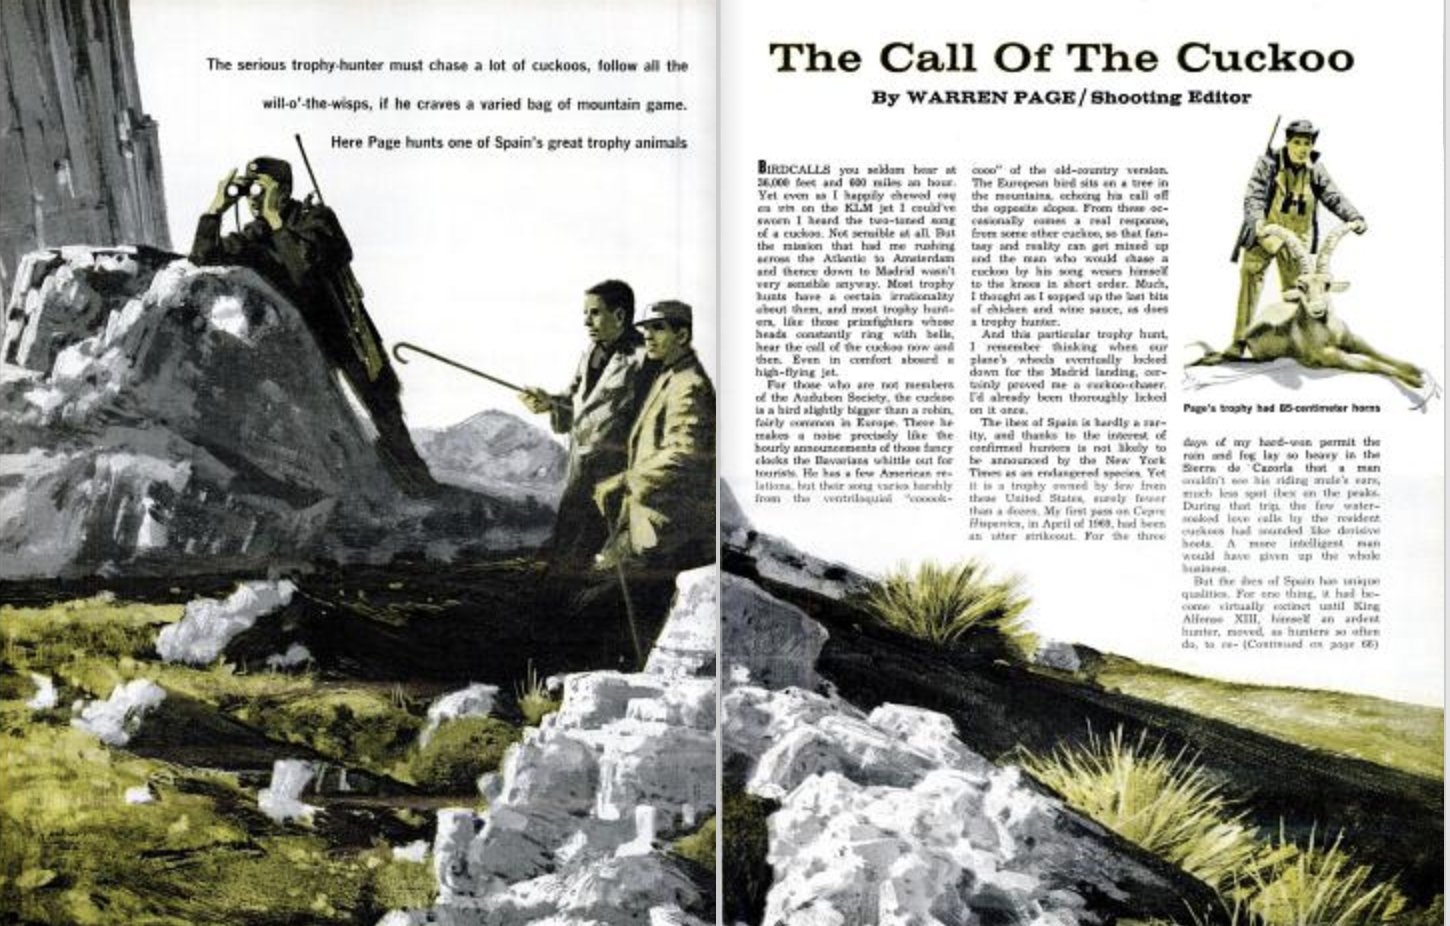 The Call of the Cuckoo by Warren Page